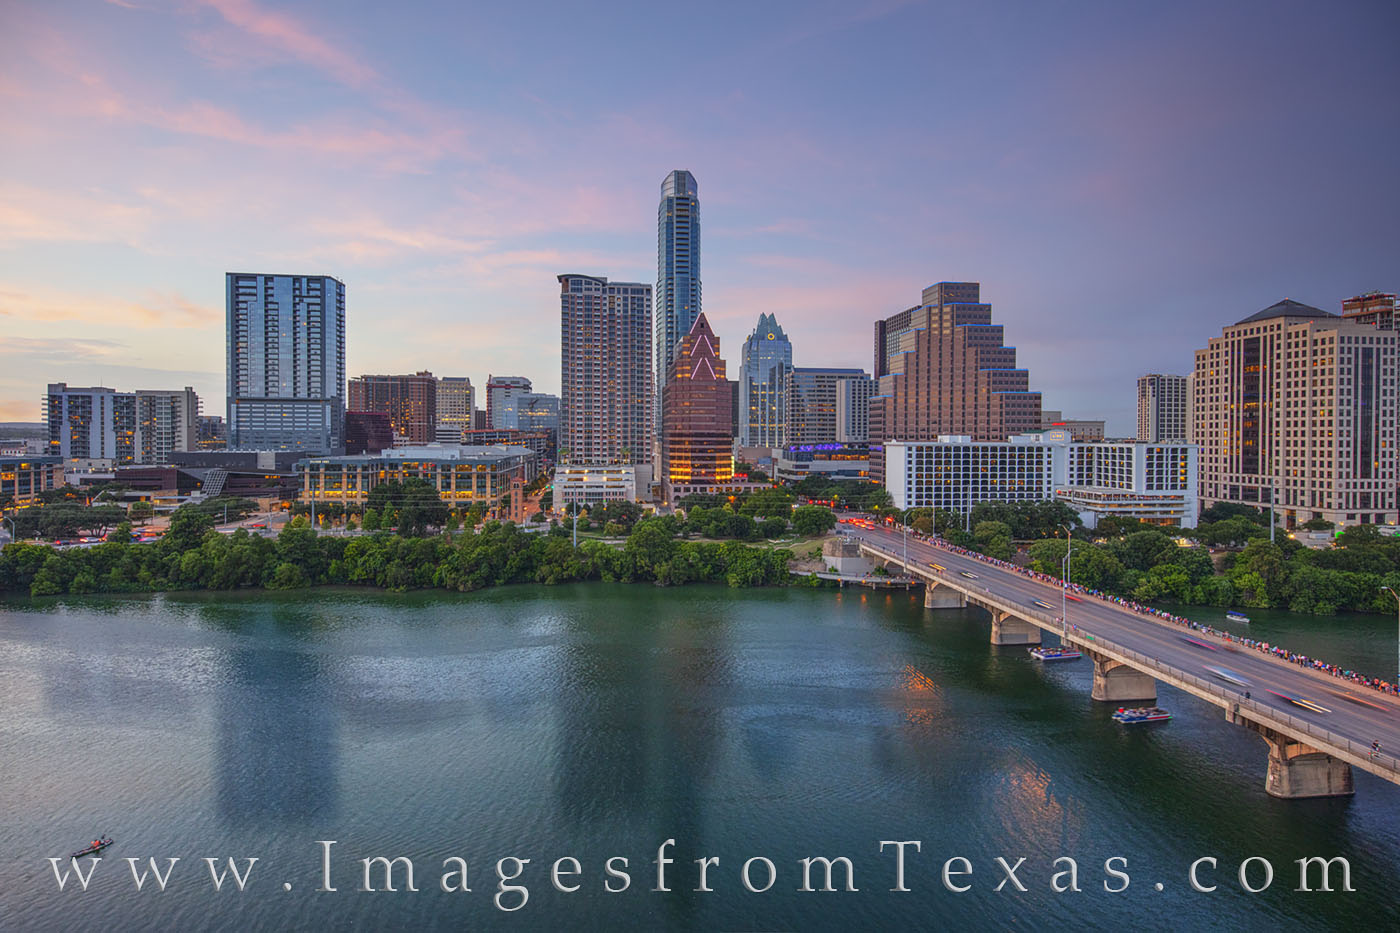 austin skyline, downtown, congress avenue, congress bridge, evening, summer, austonian, frost tower, bats, hyatt, ladybird lake, town lake, photo